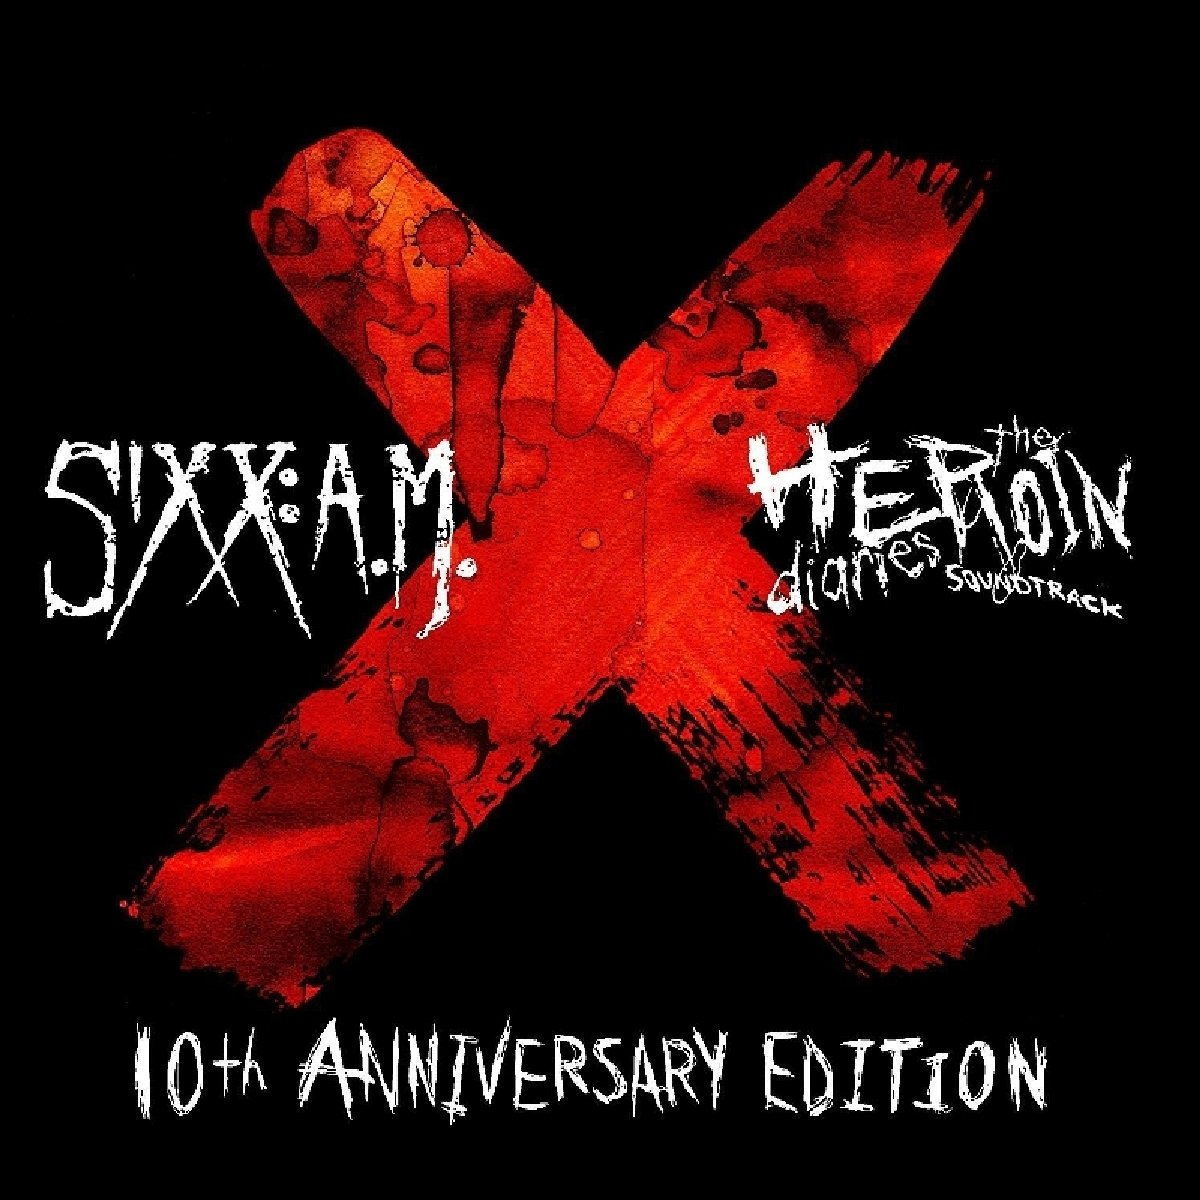 Sixx:A.M. – The Heroin Diaries Soundtrack Limited Edition 10th Anniversary Edition Red & Black Marbled Vinyl